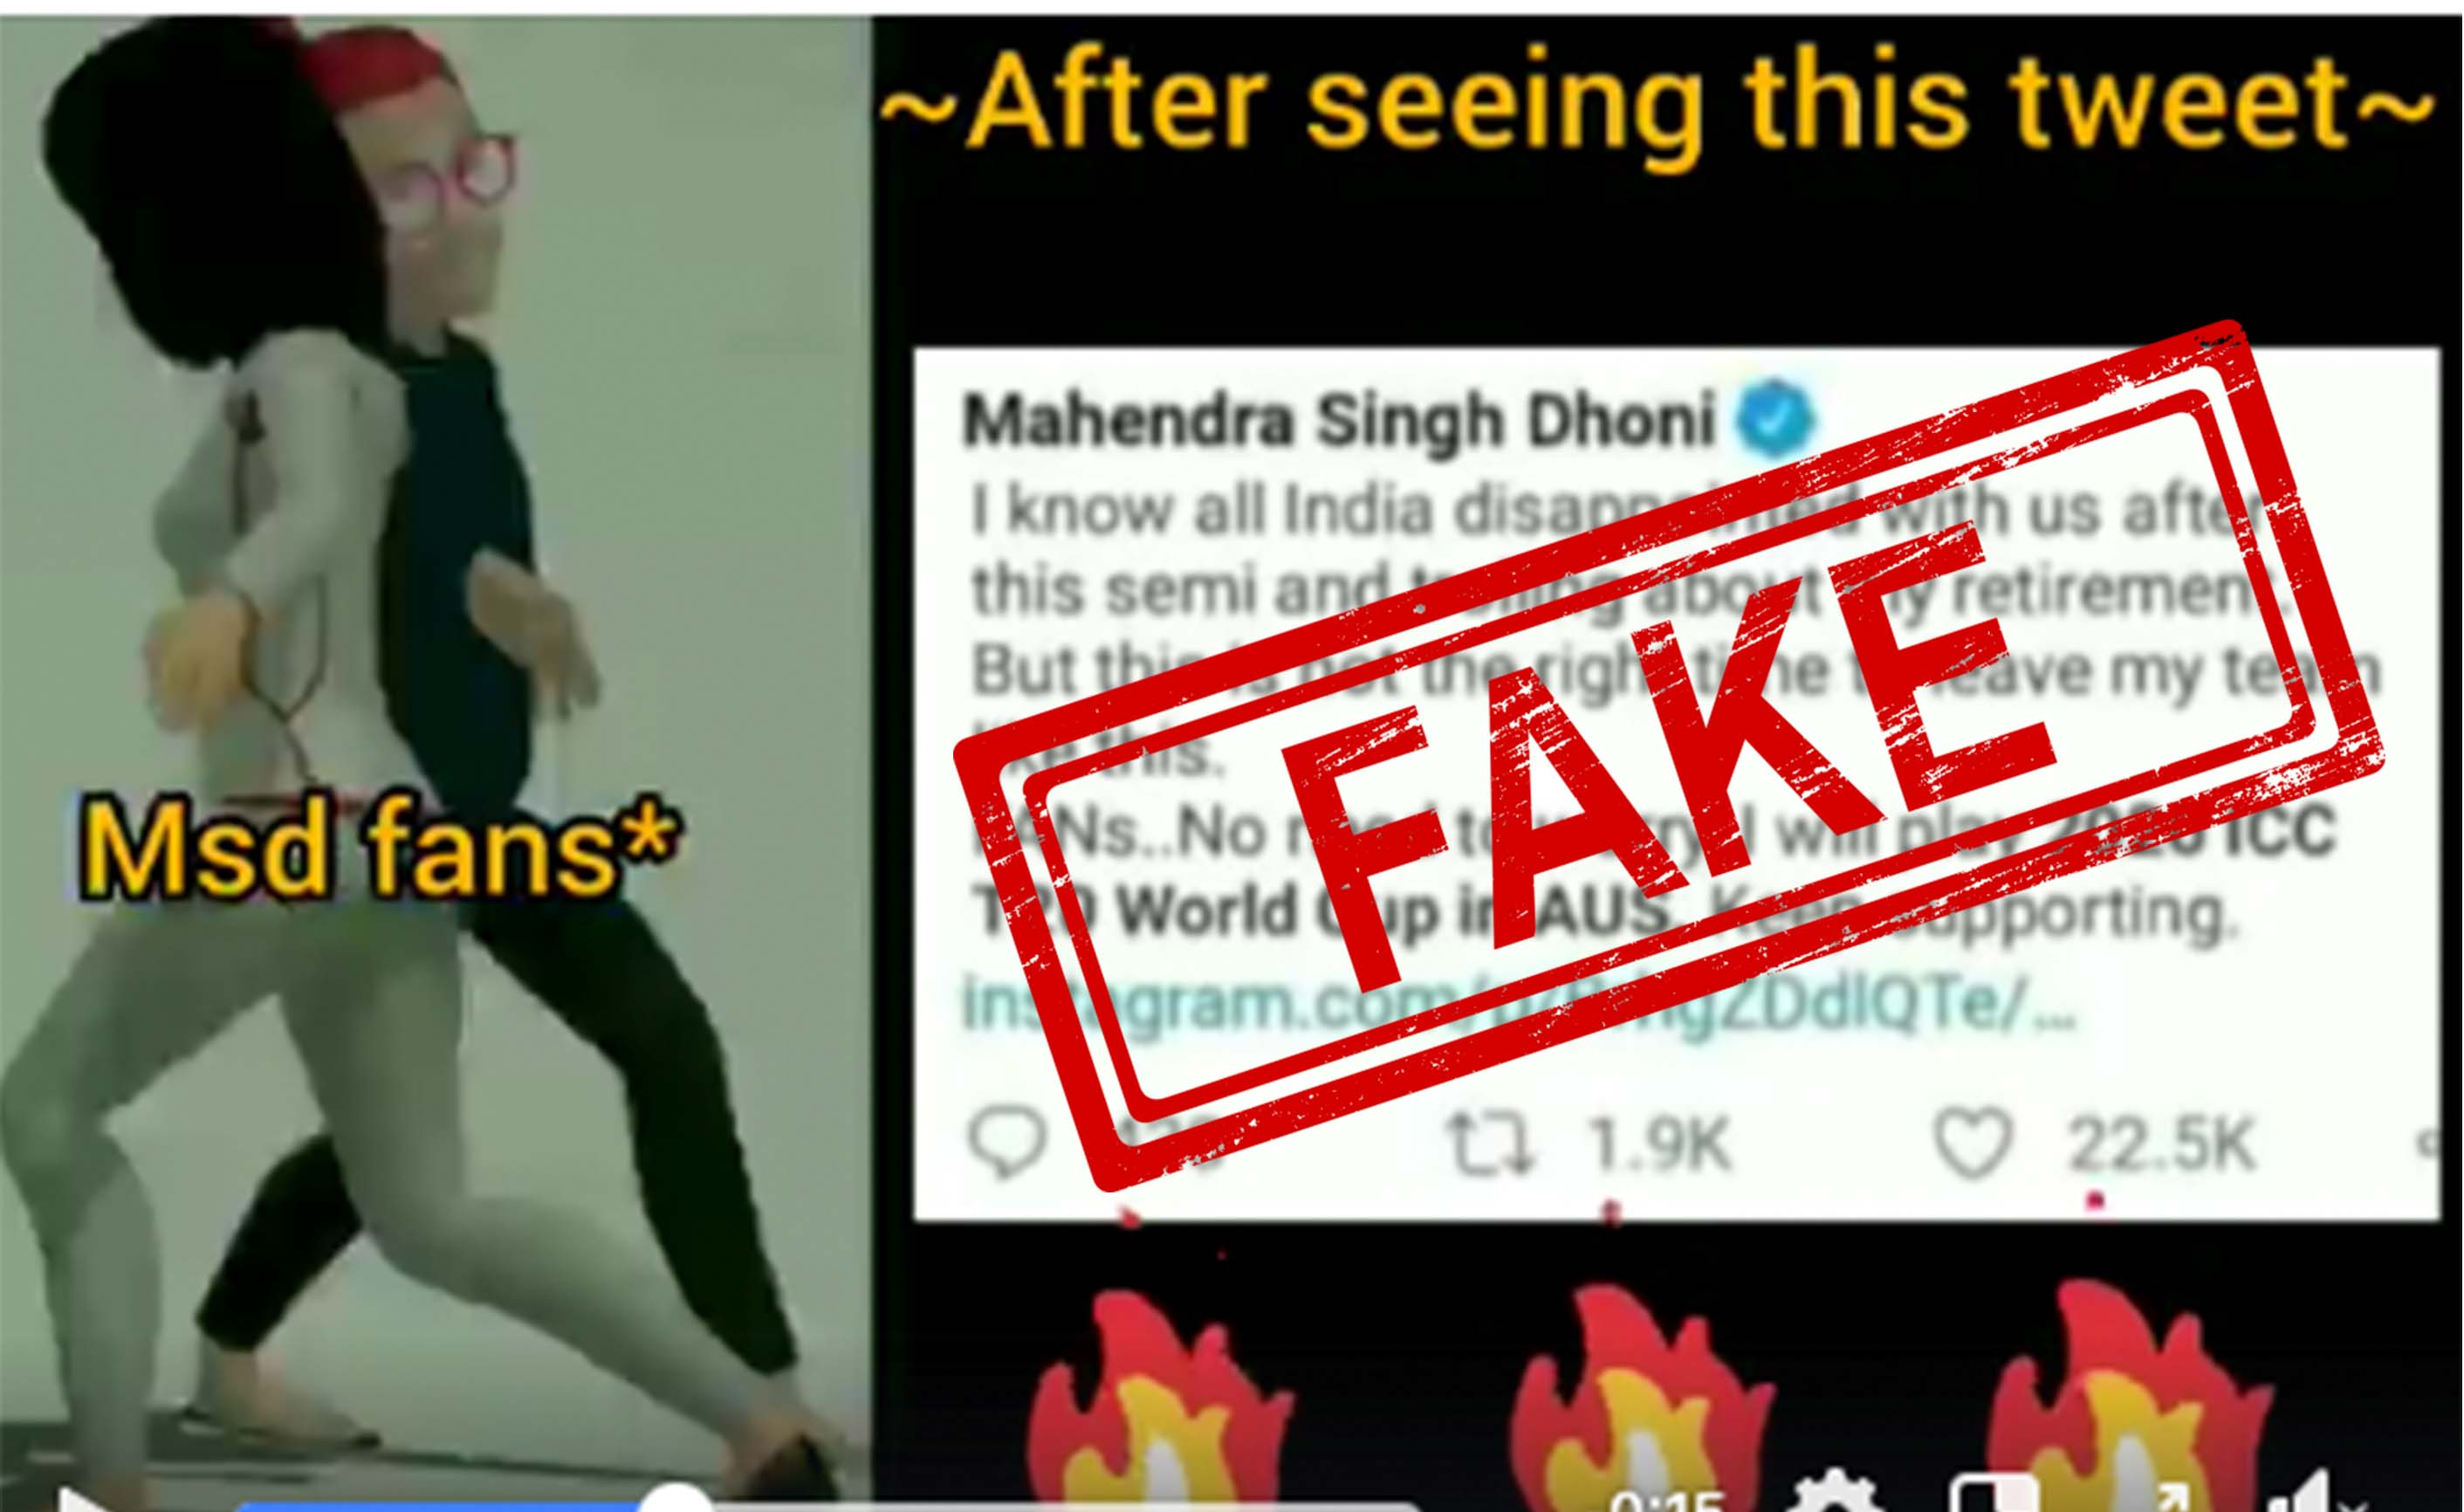 MS Dhoni, T20, World Cup, India, Tweet, NewsMobile, Mobile, News, Fact Check, Fact Checker, Fake